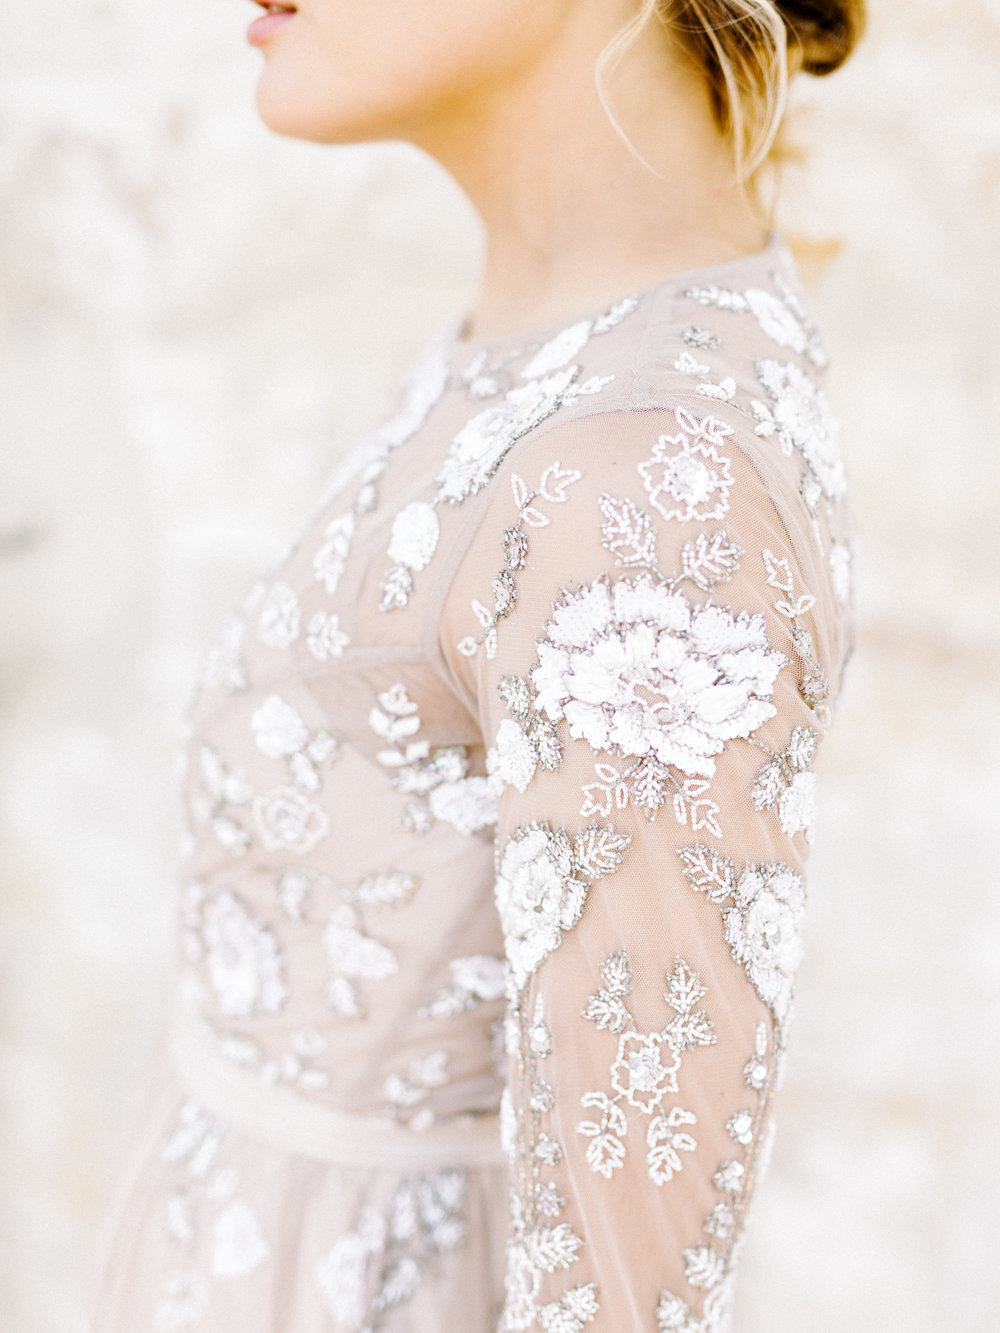 We love the beaded applique look from this summer blush BHLDN wedding dress from our whimsical elopement wedding inspiration shoot at the Woodlands Mansion in Philadelphia.